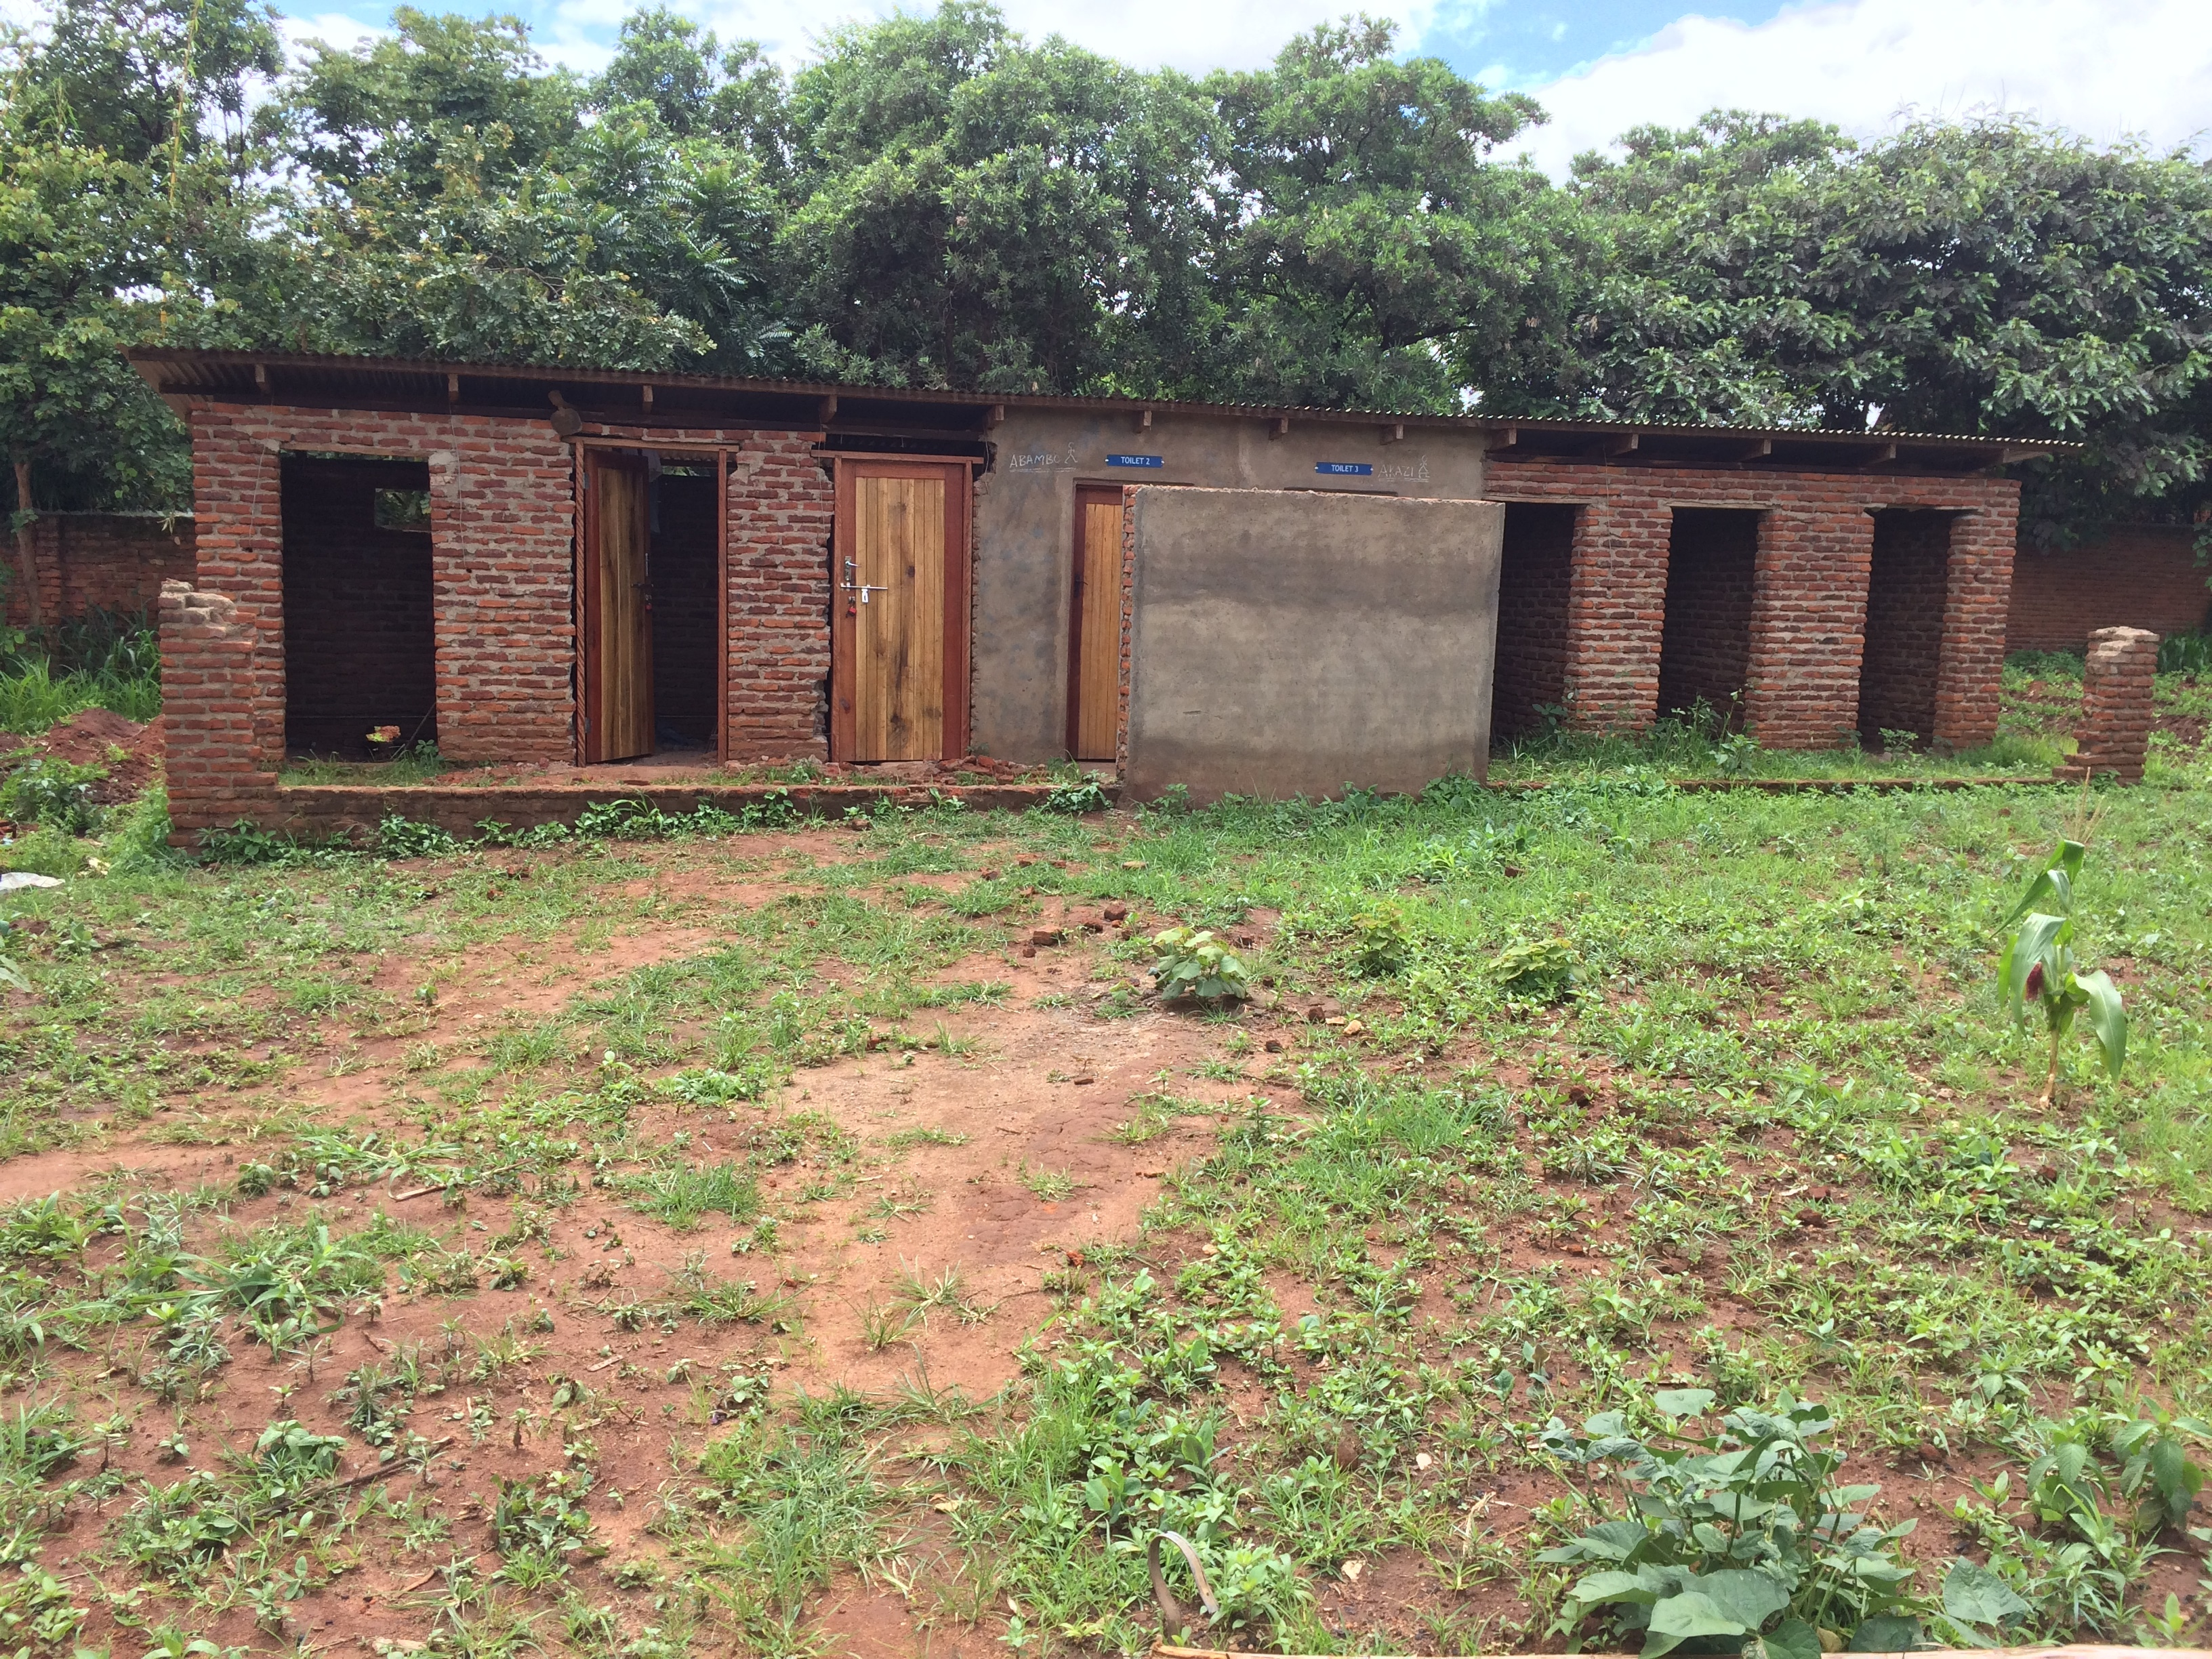 Malawi Guesthouse and Toilets